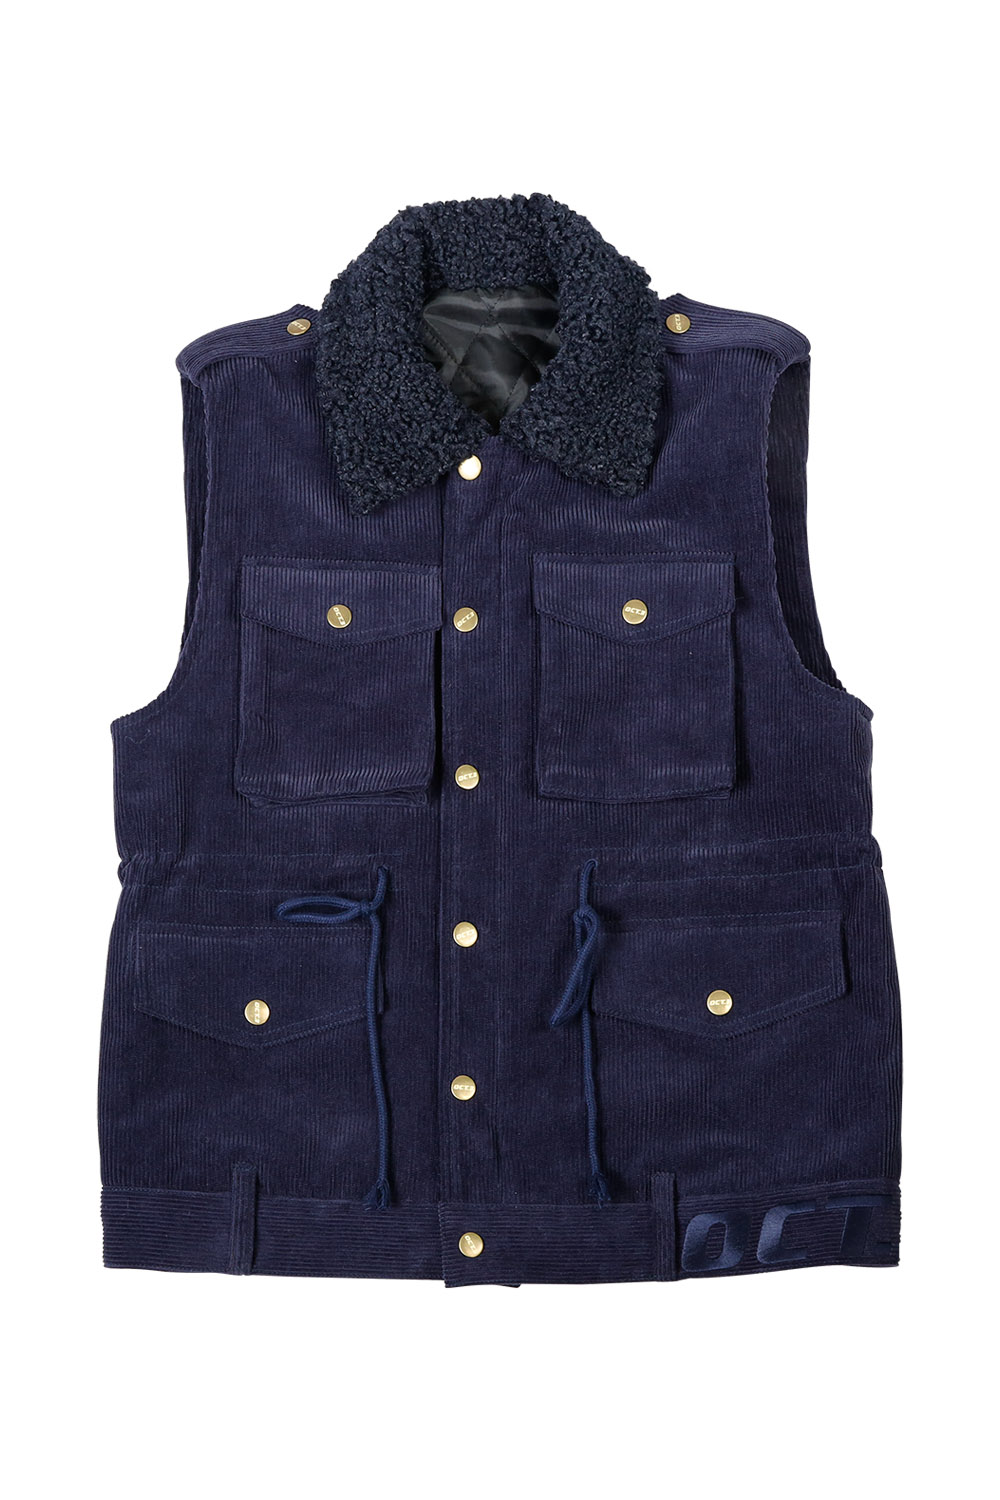 Fur Callor Pocket Vest [Navy Corduroy]